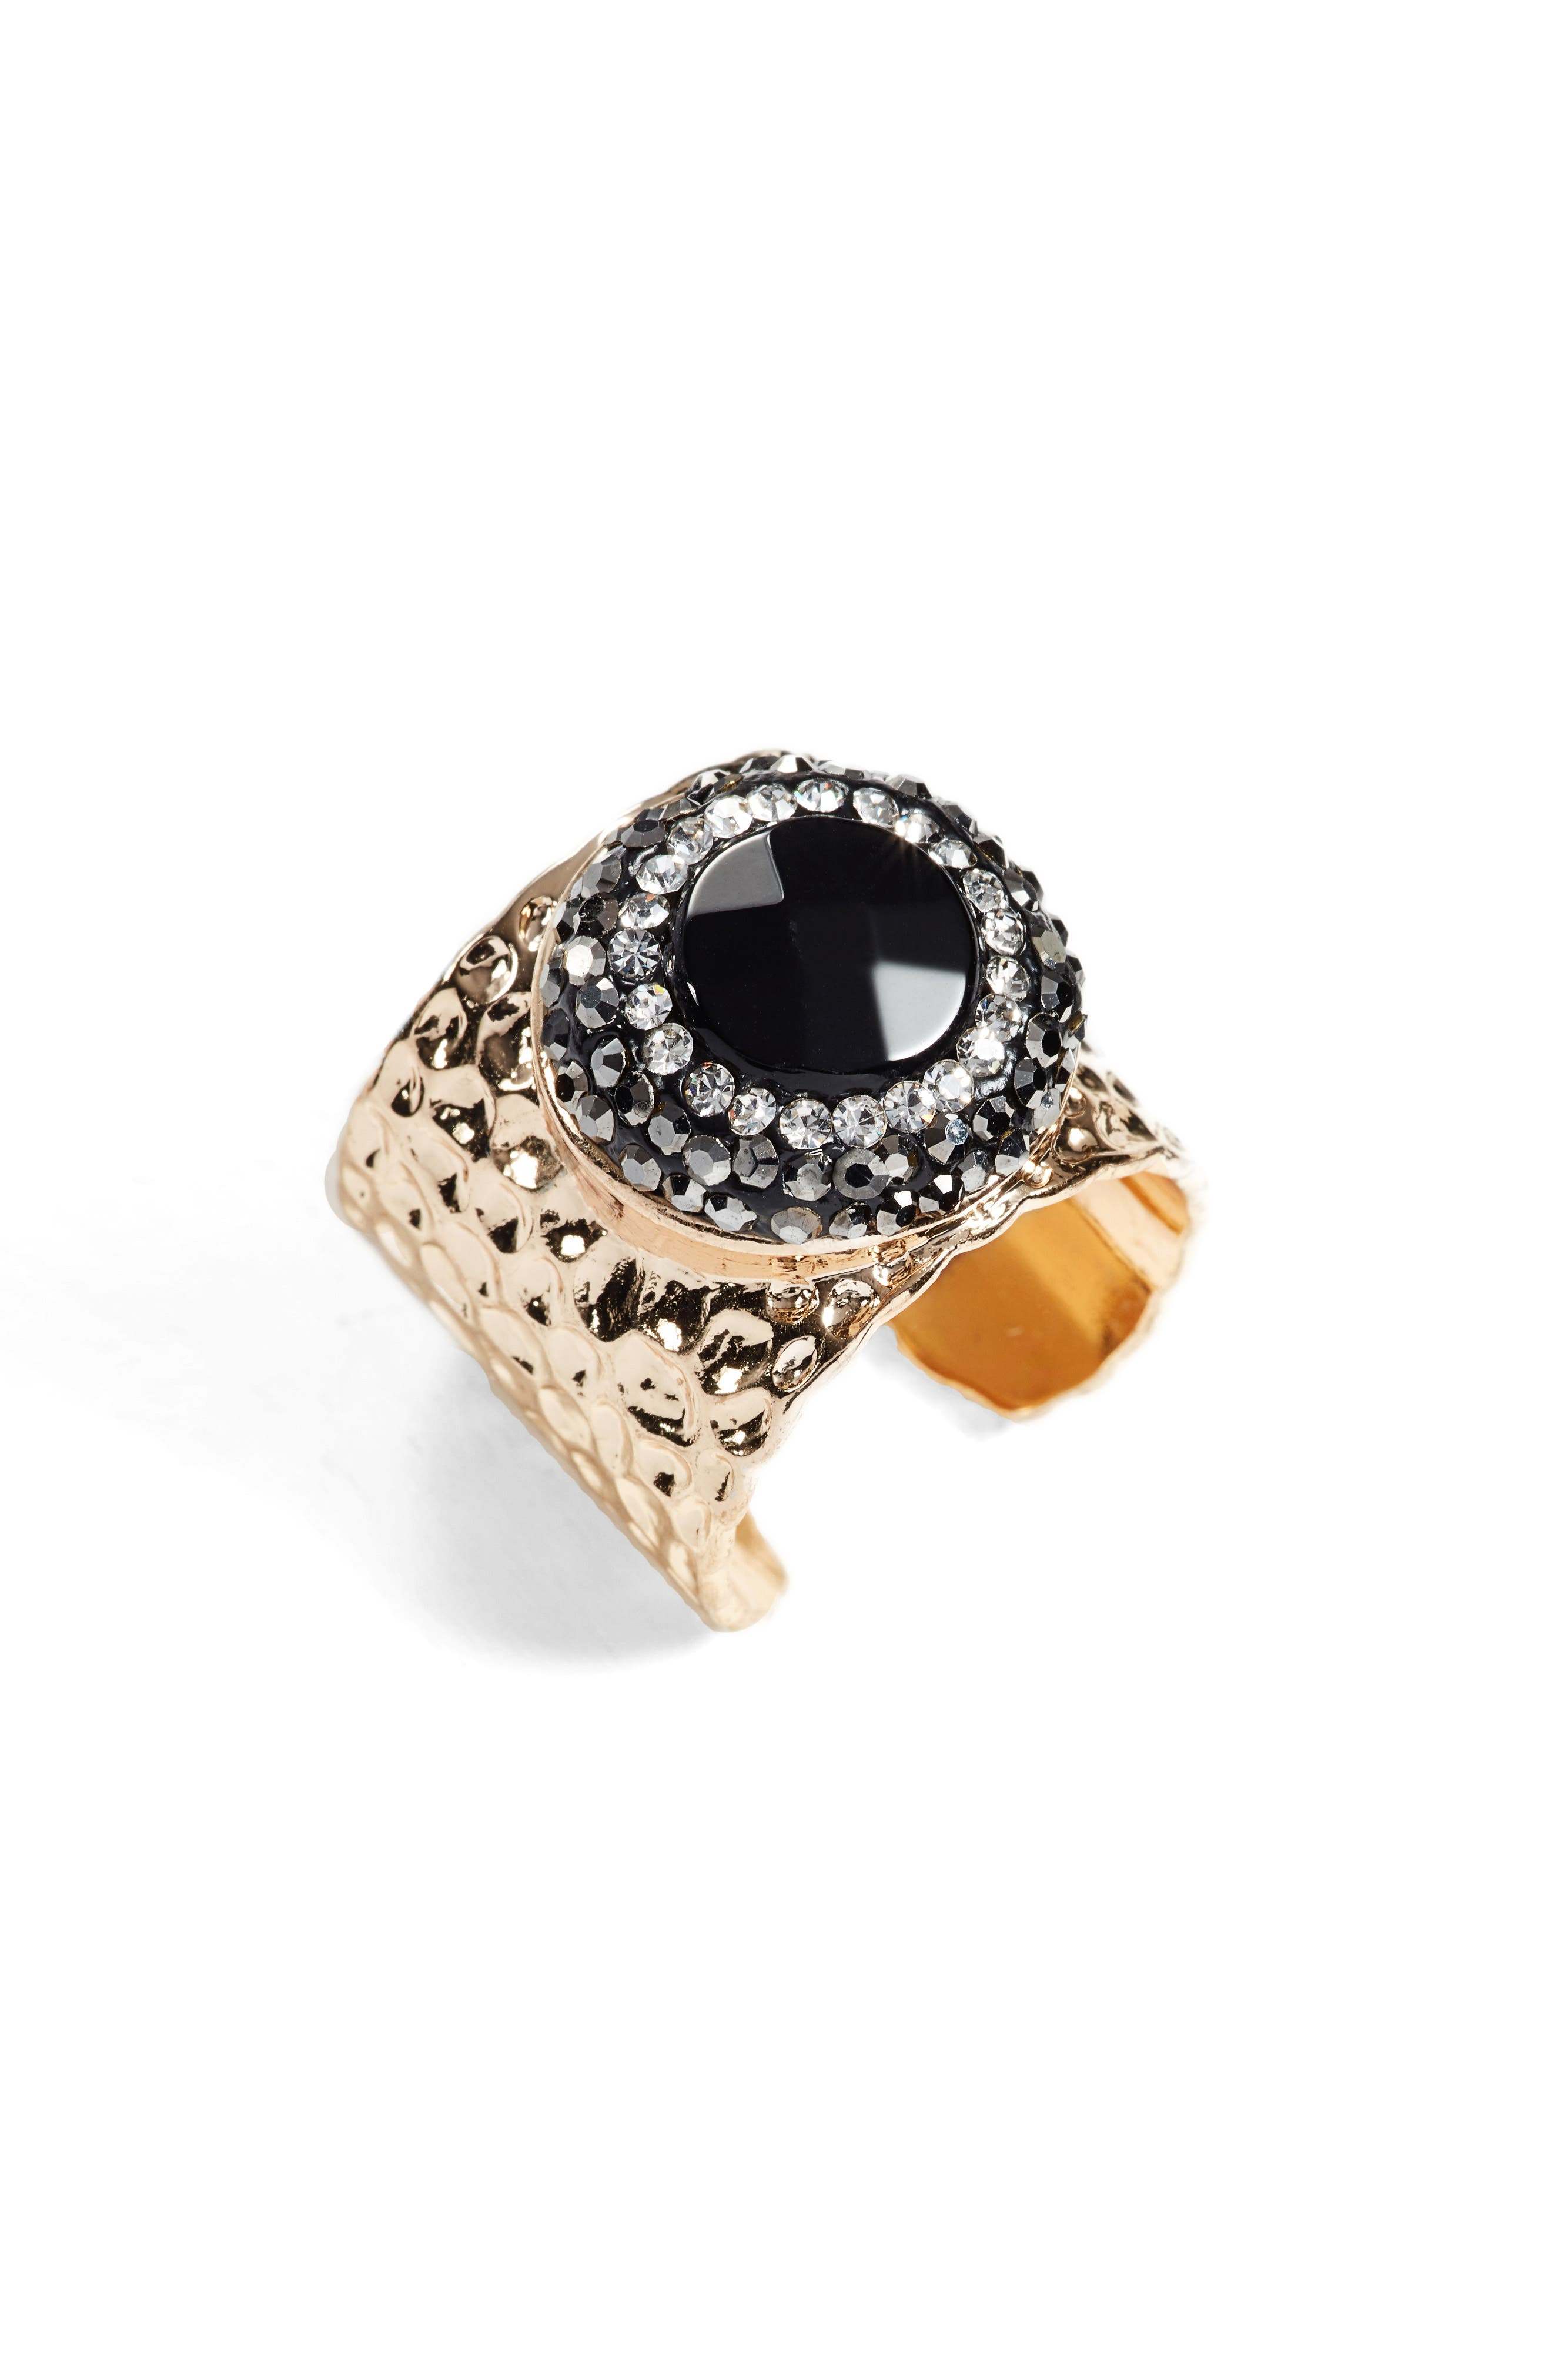 Reece Agate Adjustable Ring,                             Main thumbnail 1, color,                             001